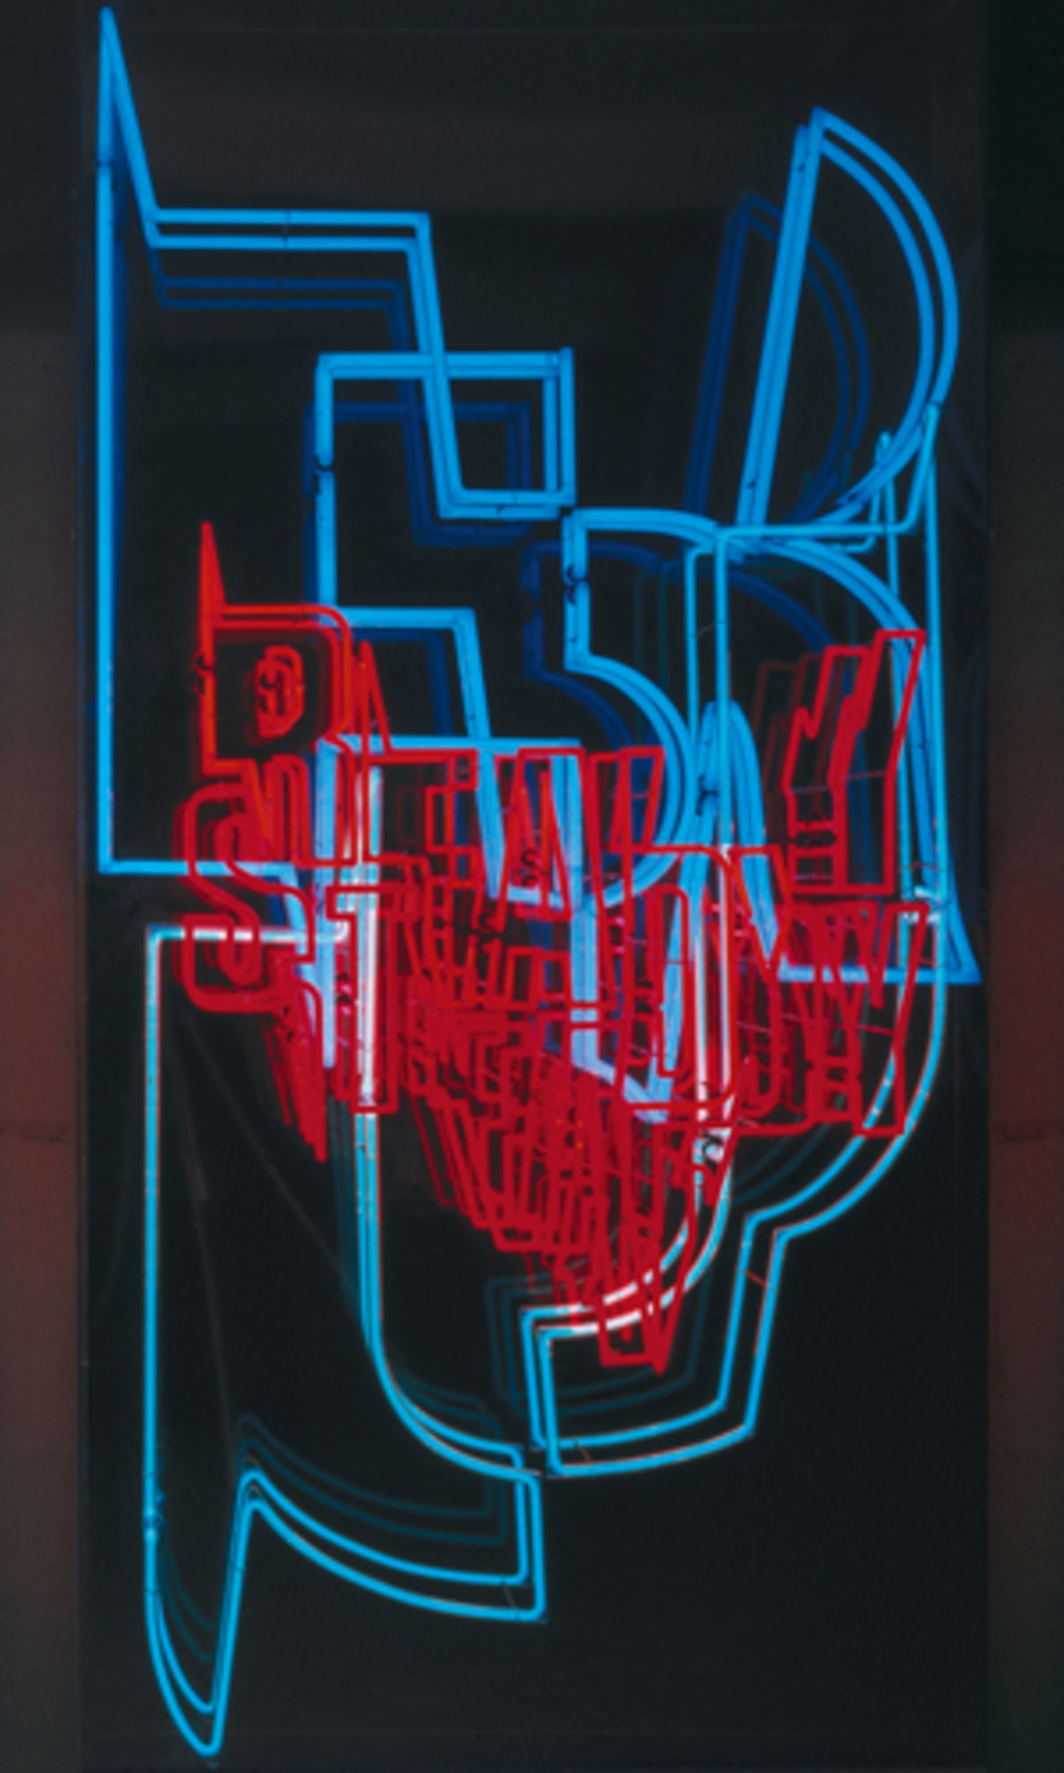 "KRIWET, Neon Text 2, 1973, high-voltage fluorescent tubes, anodized aluminium, perspex glass, 79 2/5 x 40 x 9 4/5""."